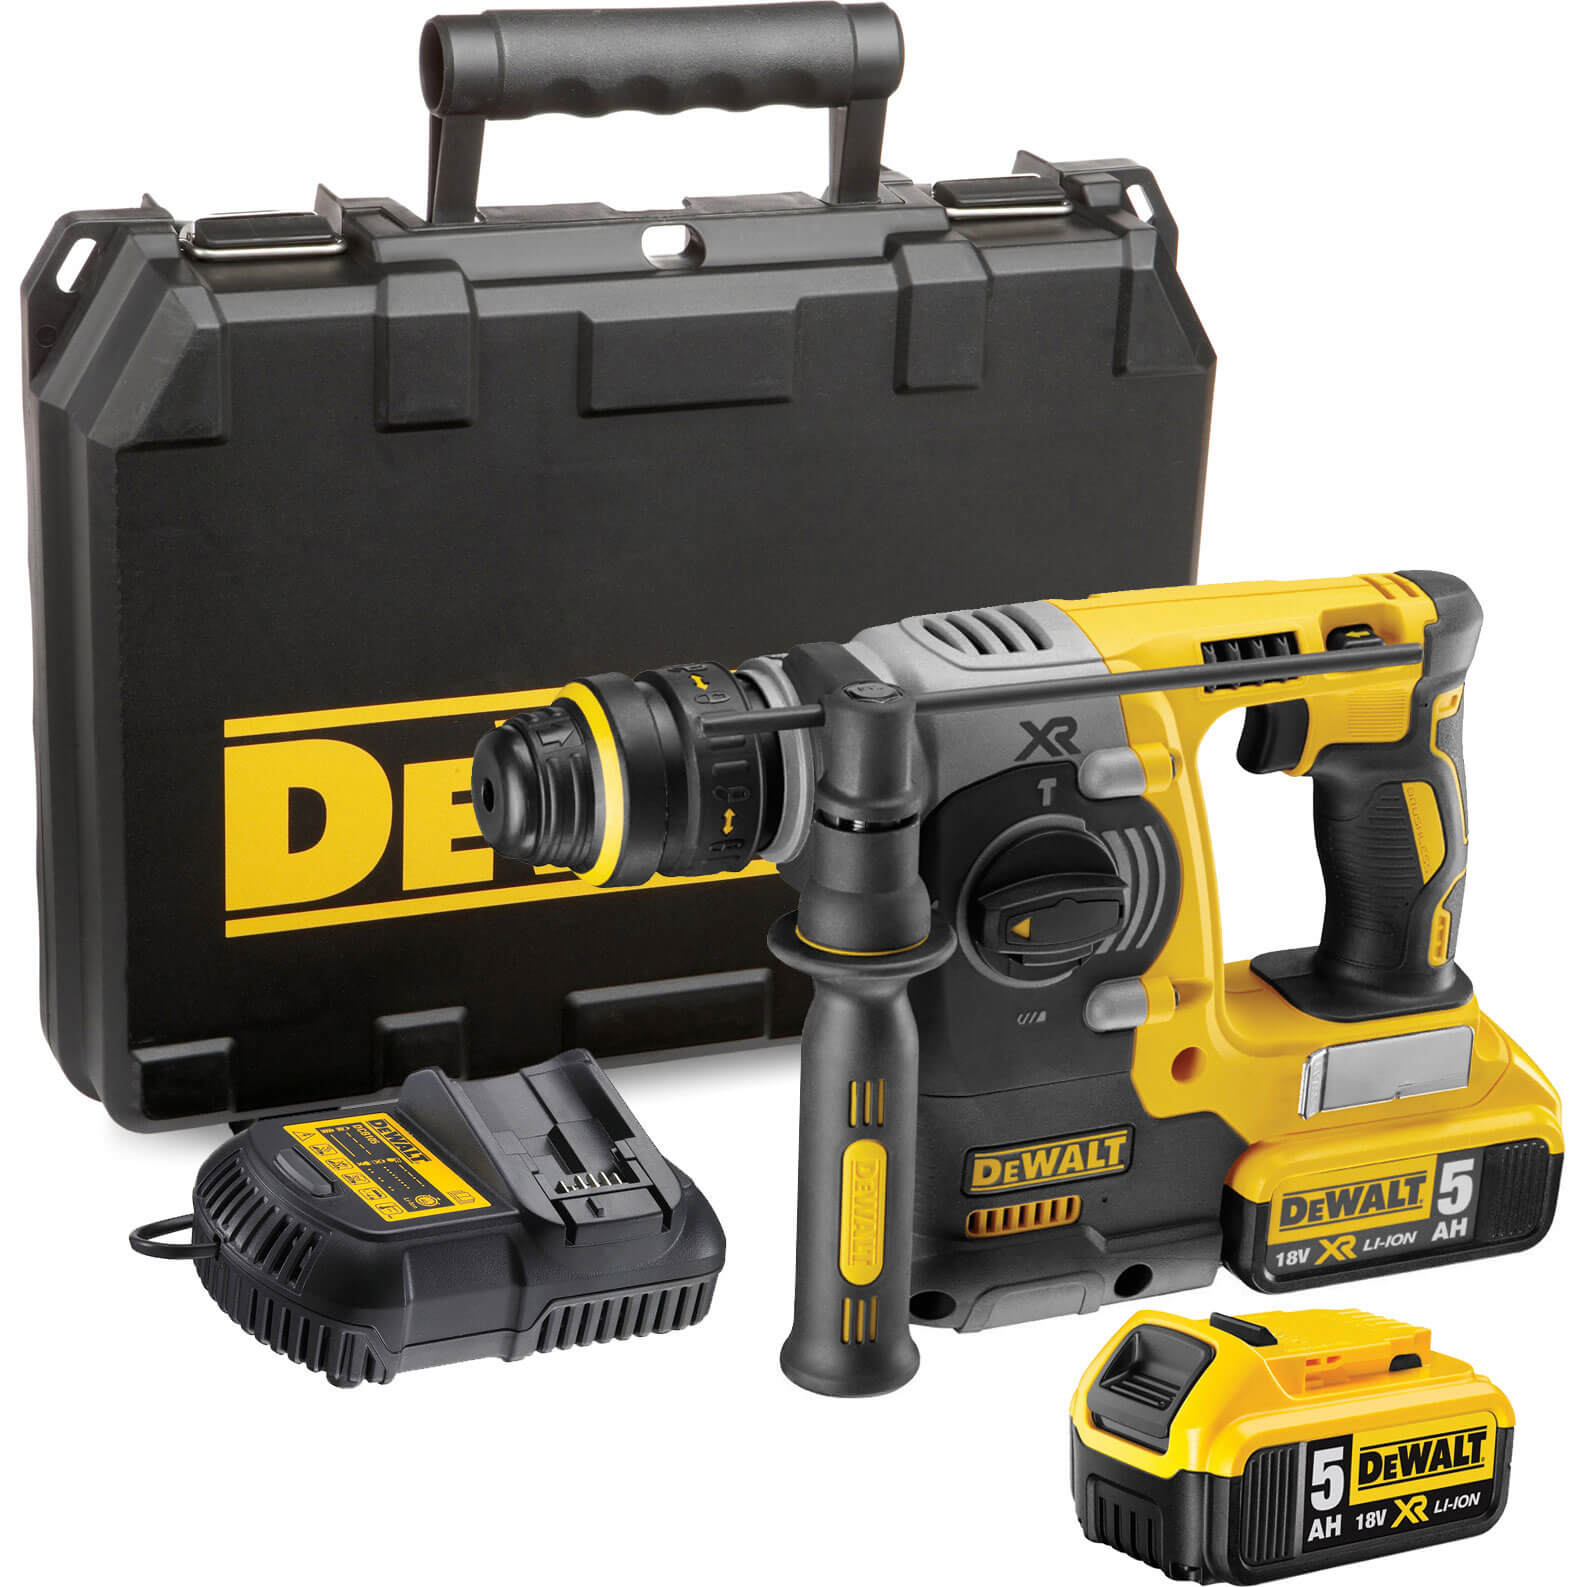 dewalt dch274p2 18v cordless brushless xr rotary sds. Black Bedroom Furniture Sets. Home Design Ideas